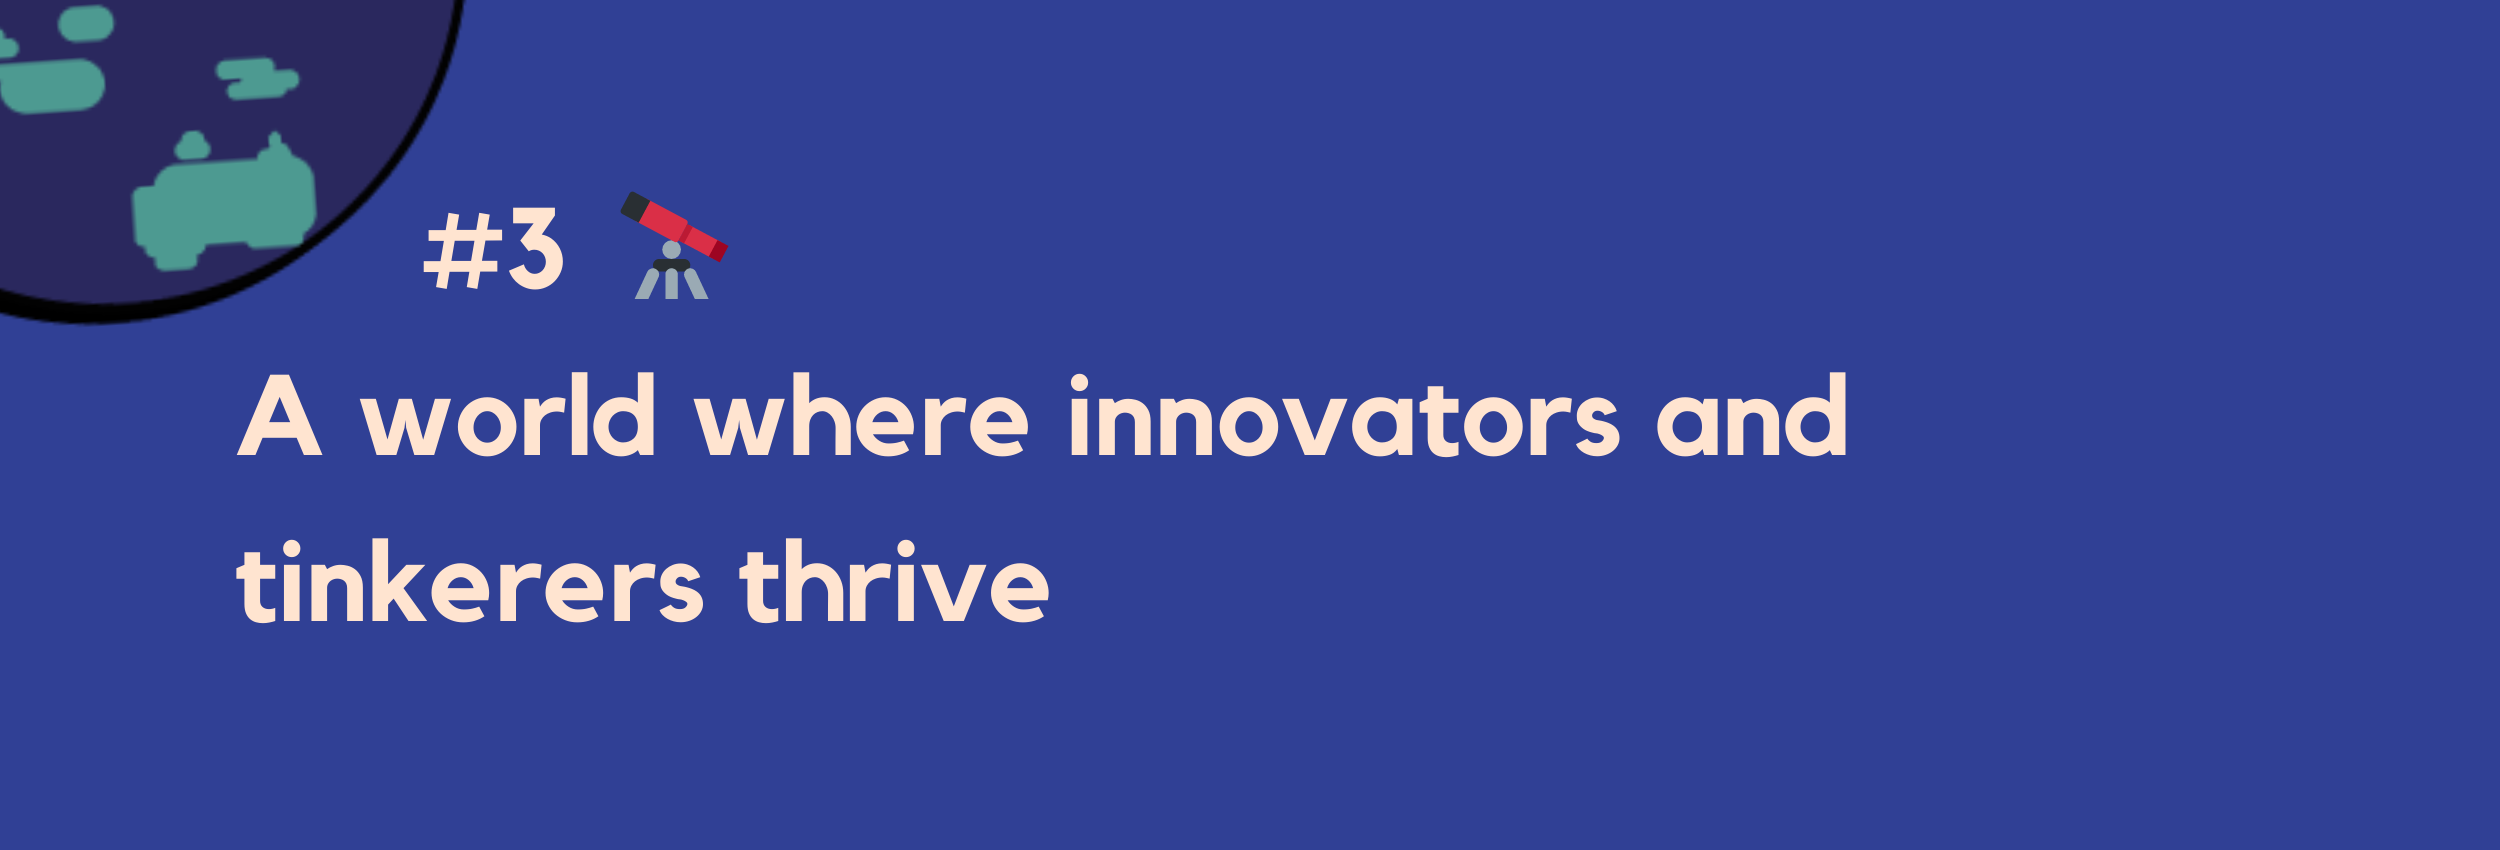 #3 — A world where innovators and tinkerers thrive